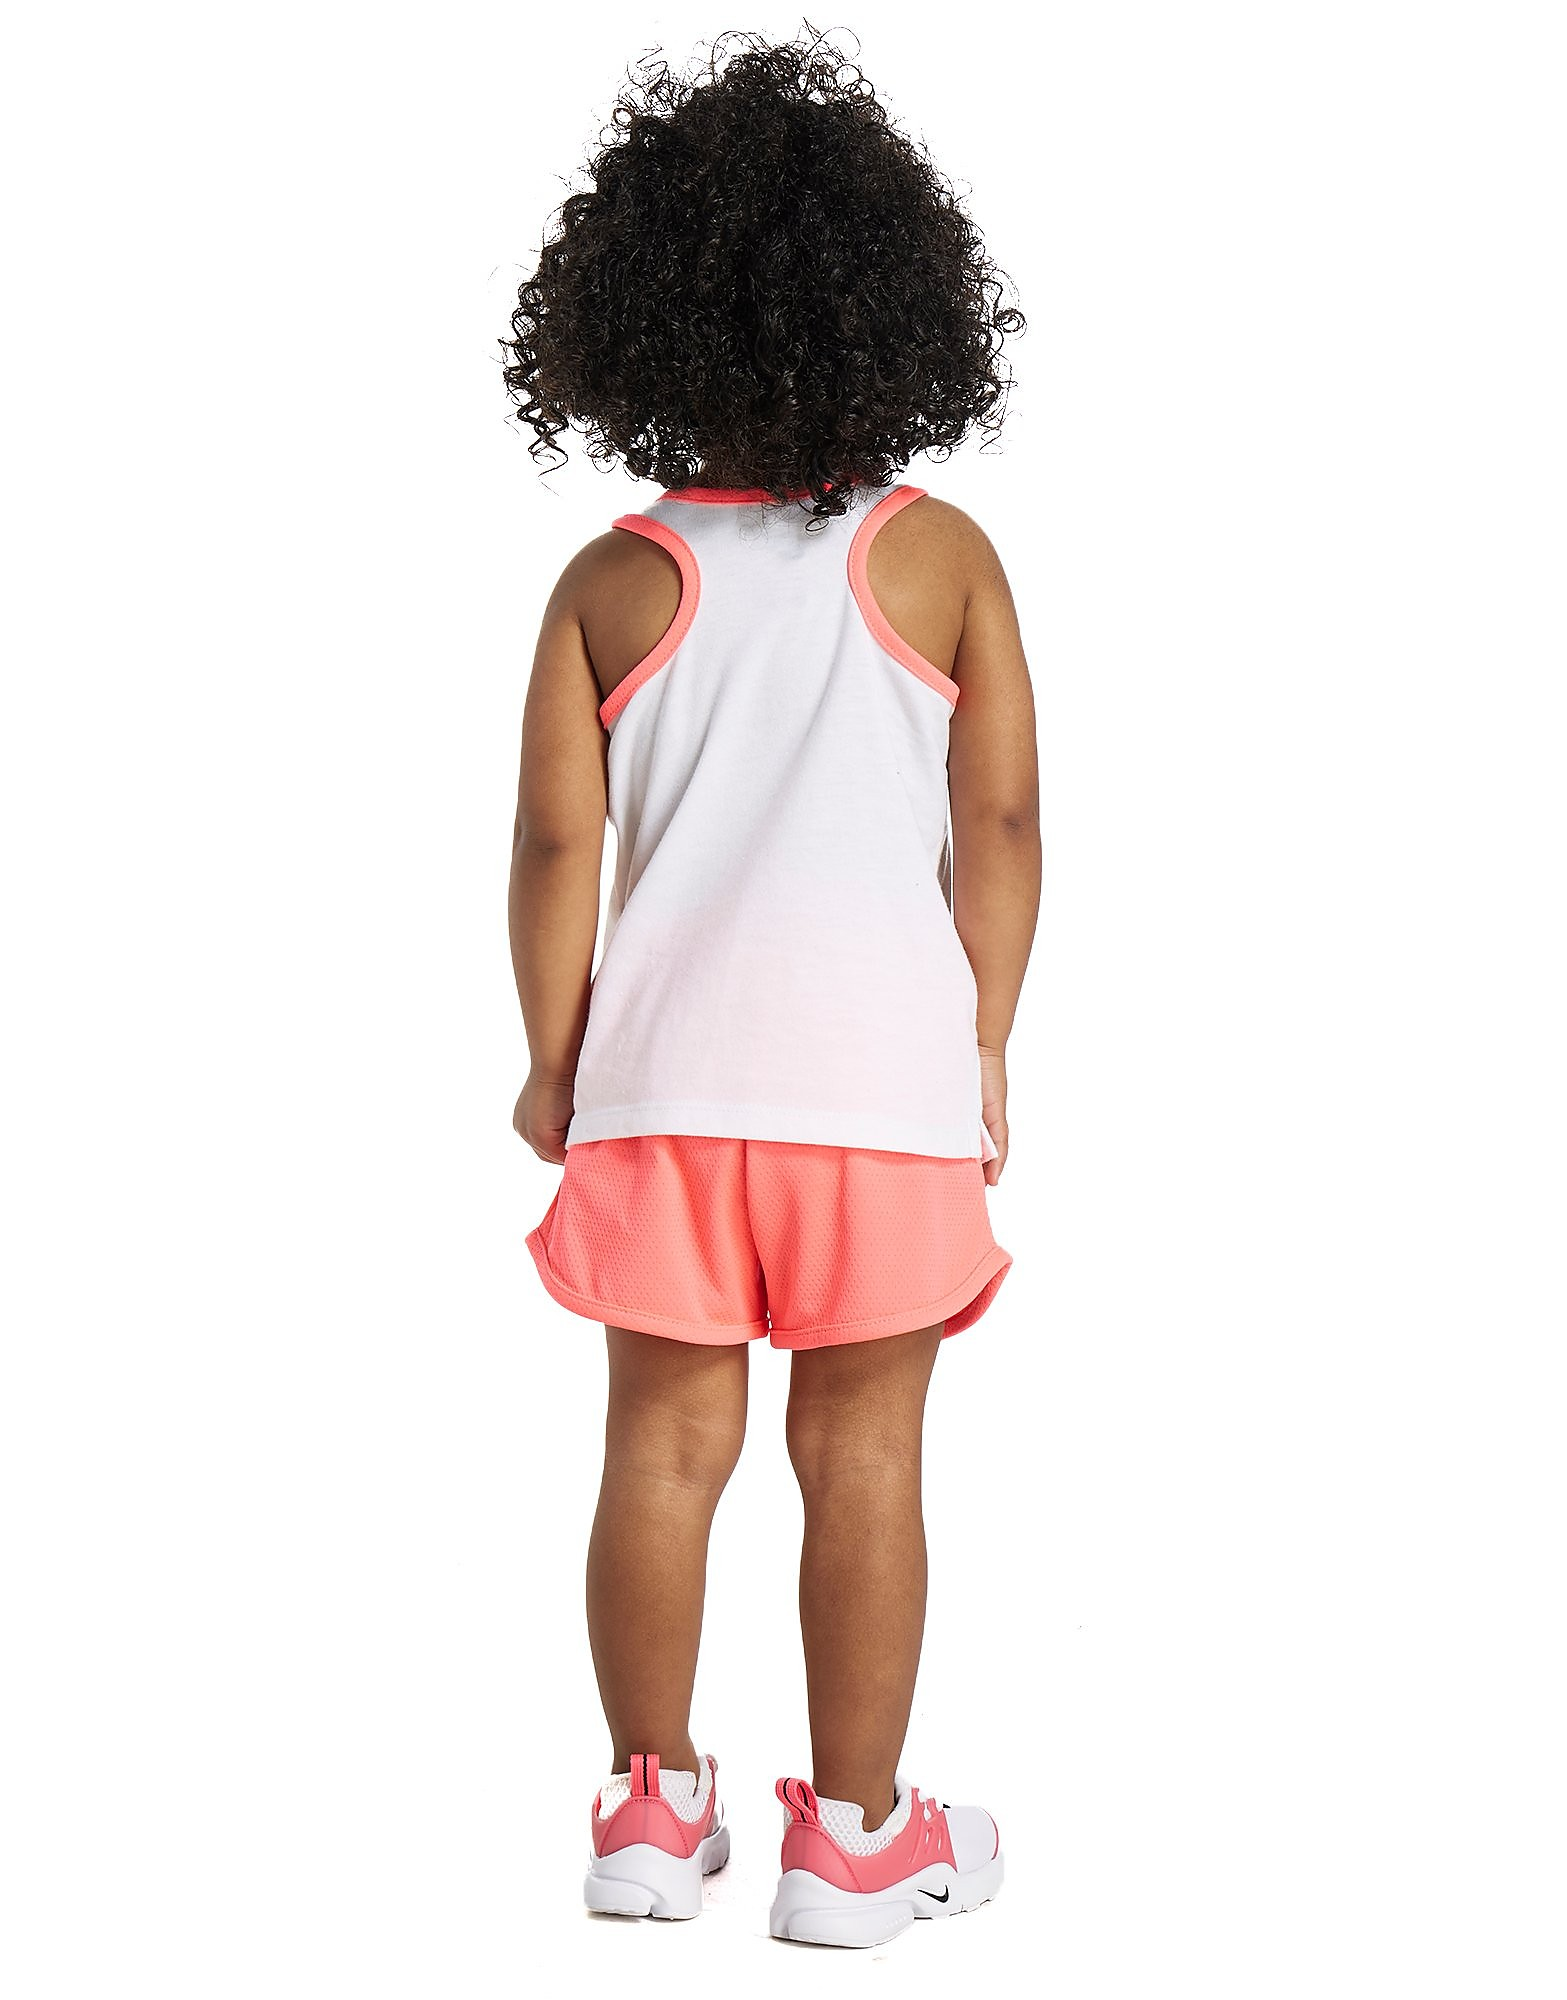 Nike Girls' Futura Tank and Short Set Infant